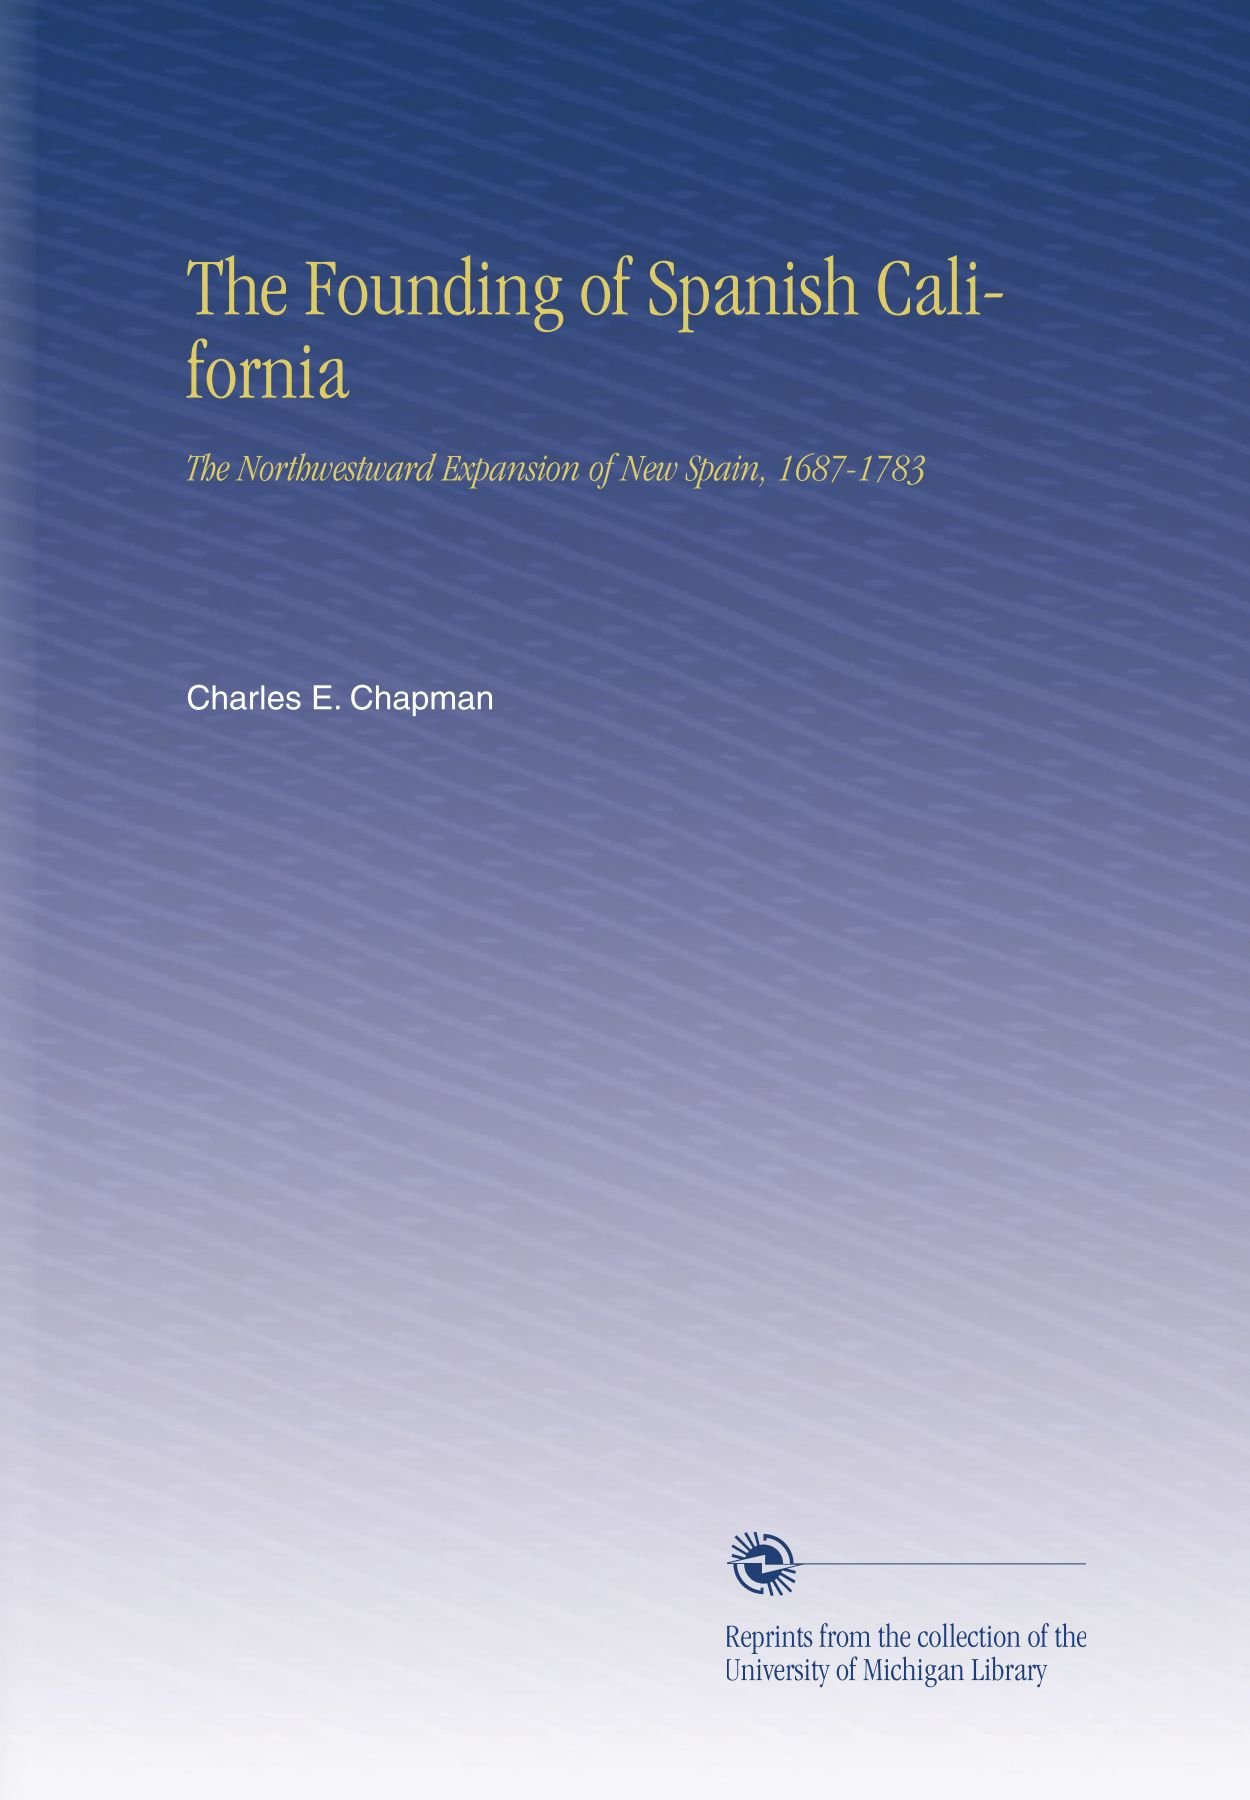 Download The Founding of Spanish California: The Northwestward Expansion of New Spain, 1687-1783 pdf epub